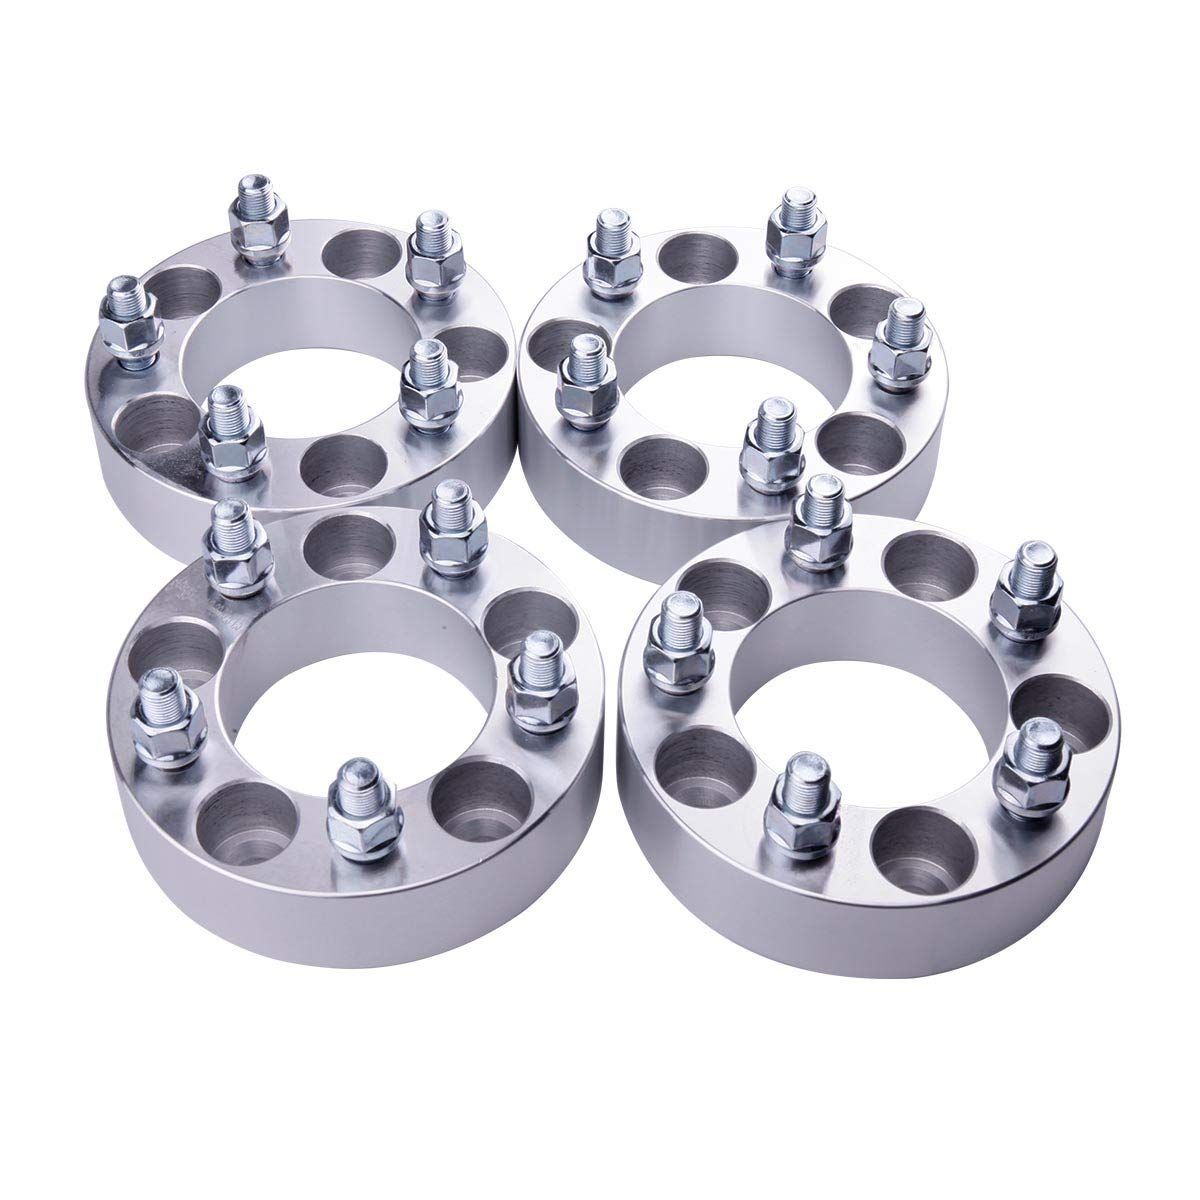 127mm 1 87.1mm Wheel Adapters Fit for Jeep Commander Grand Cherokee Wrangler with Thread Pitch 1//2 PUENGSI 5 Lug Wheel Spacer 5x5 to 5x5